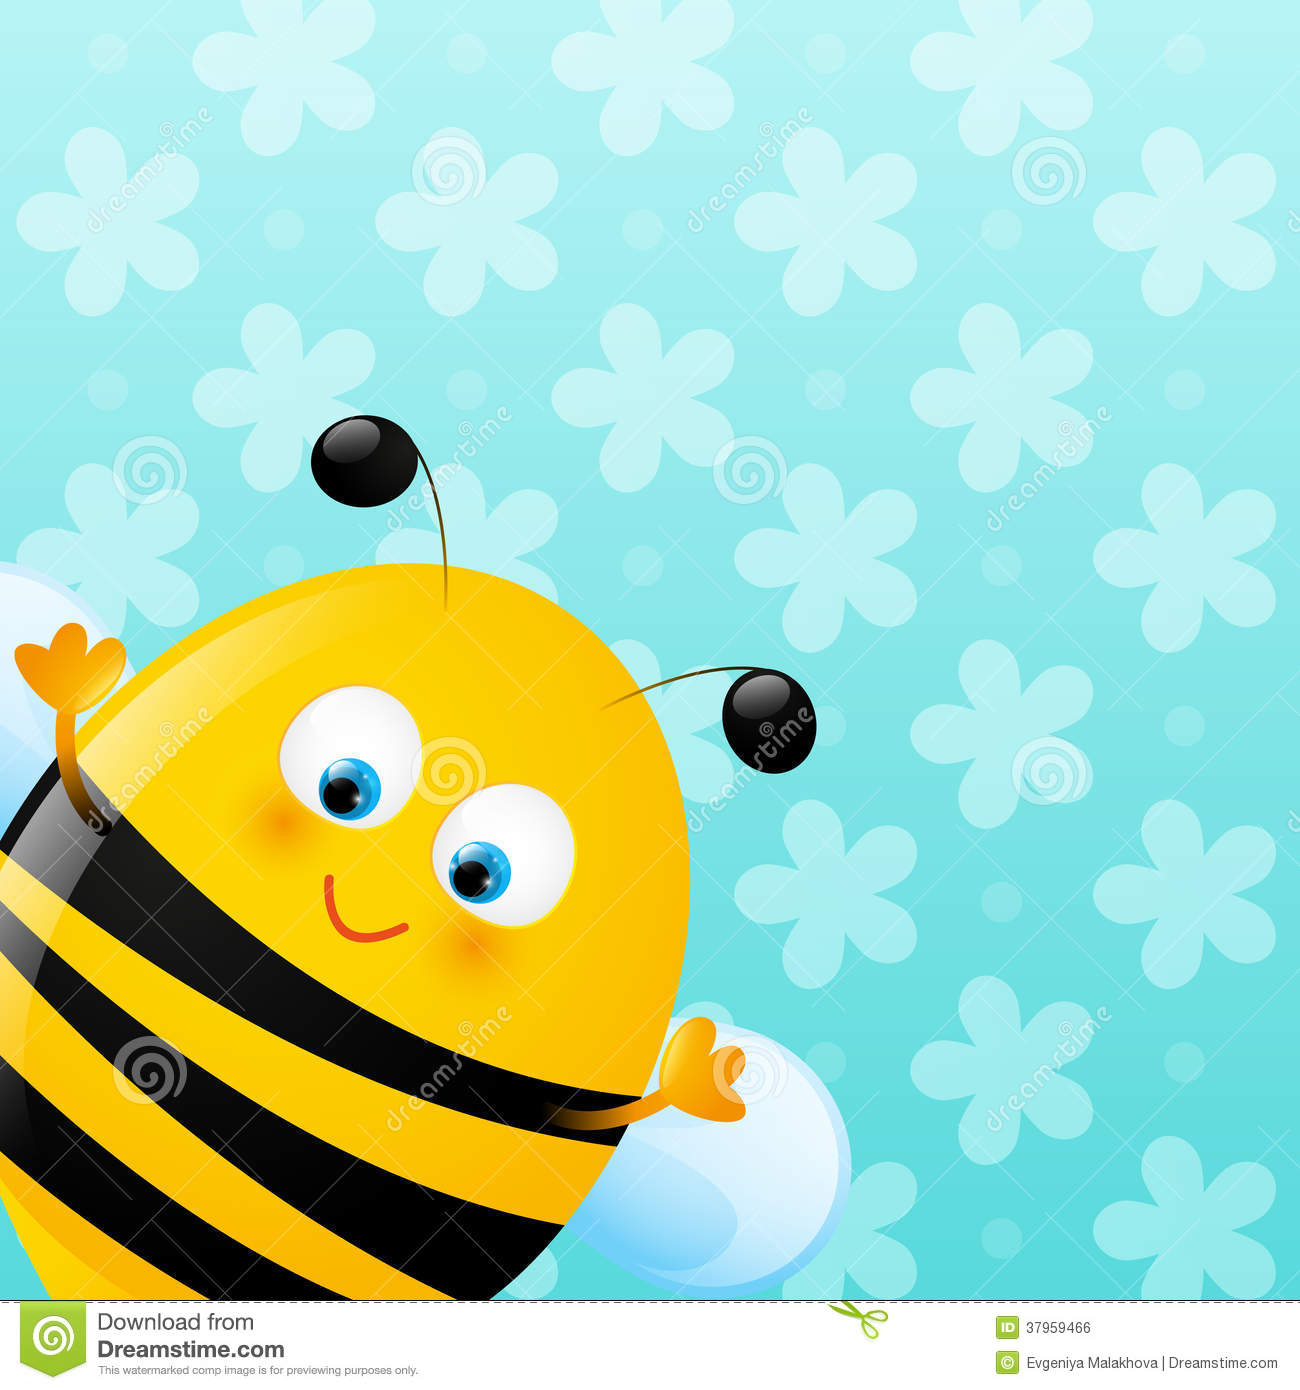 Cute Bee On Blue Background Stock Vector Illustration Of